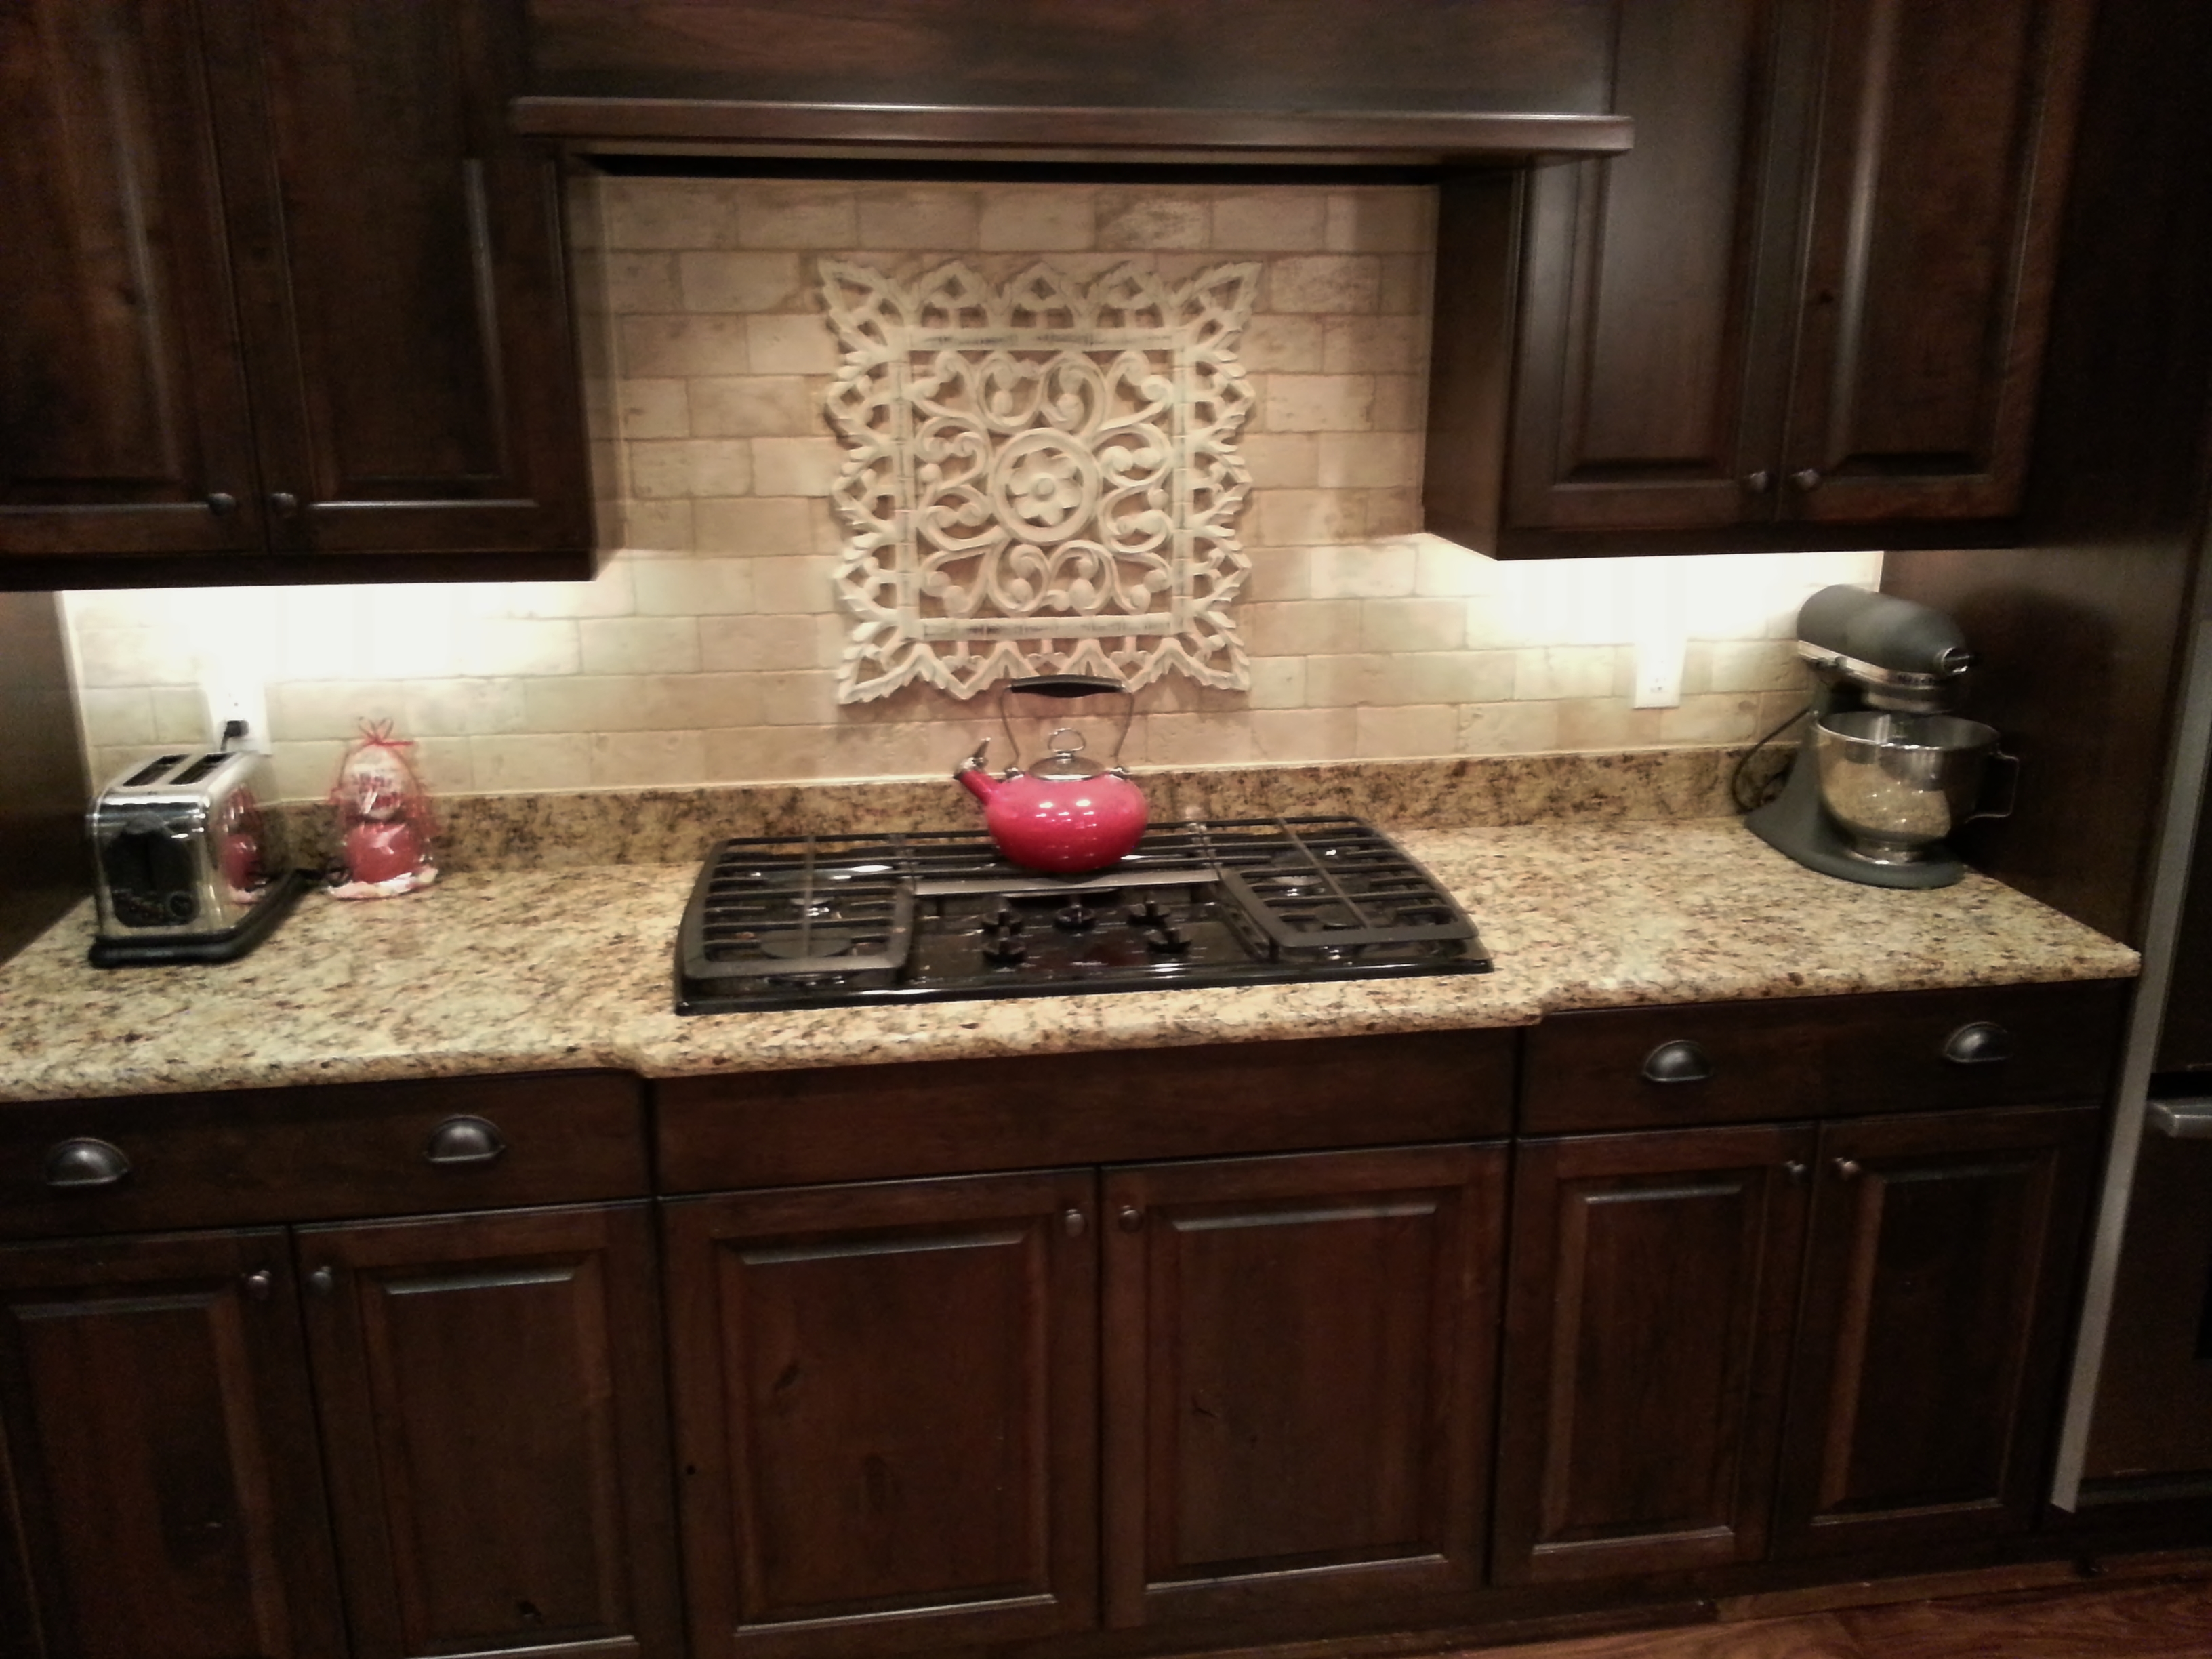 Utah handyman fix it handyman llc we provide a handyman service but what we are really selling - Delightful backsplash designs beautify kitchen ...